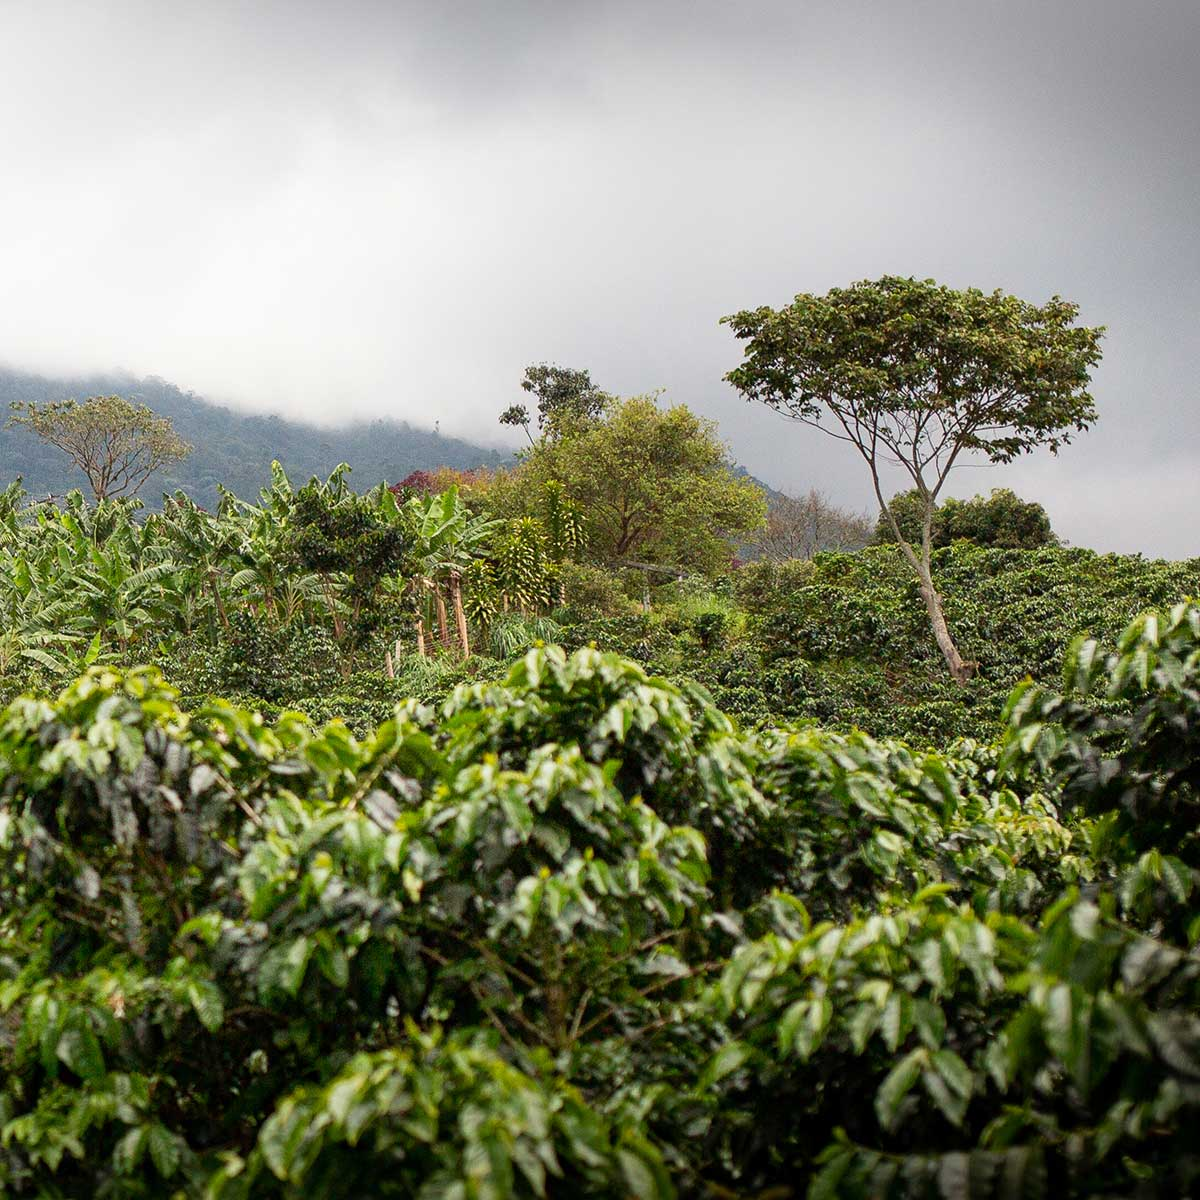 The Arhuaco, Colombia. CafCaf.de – Kaffee & Blog, Kaffeeblog